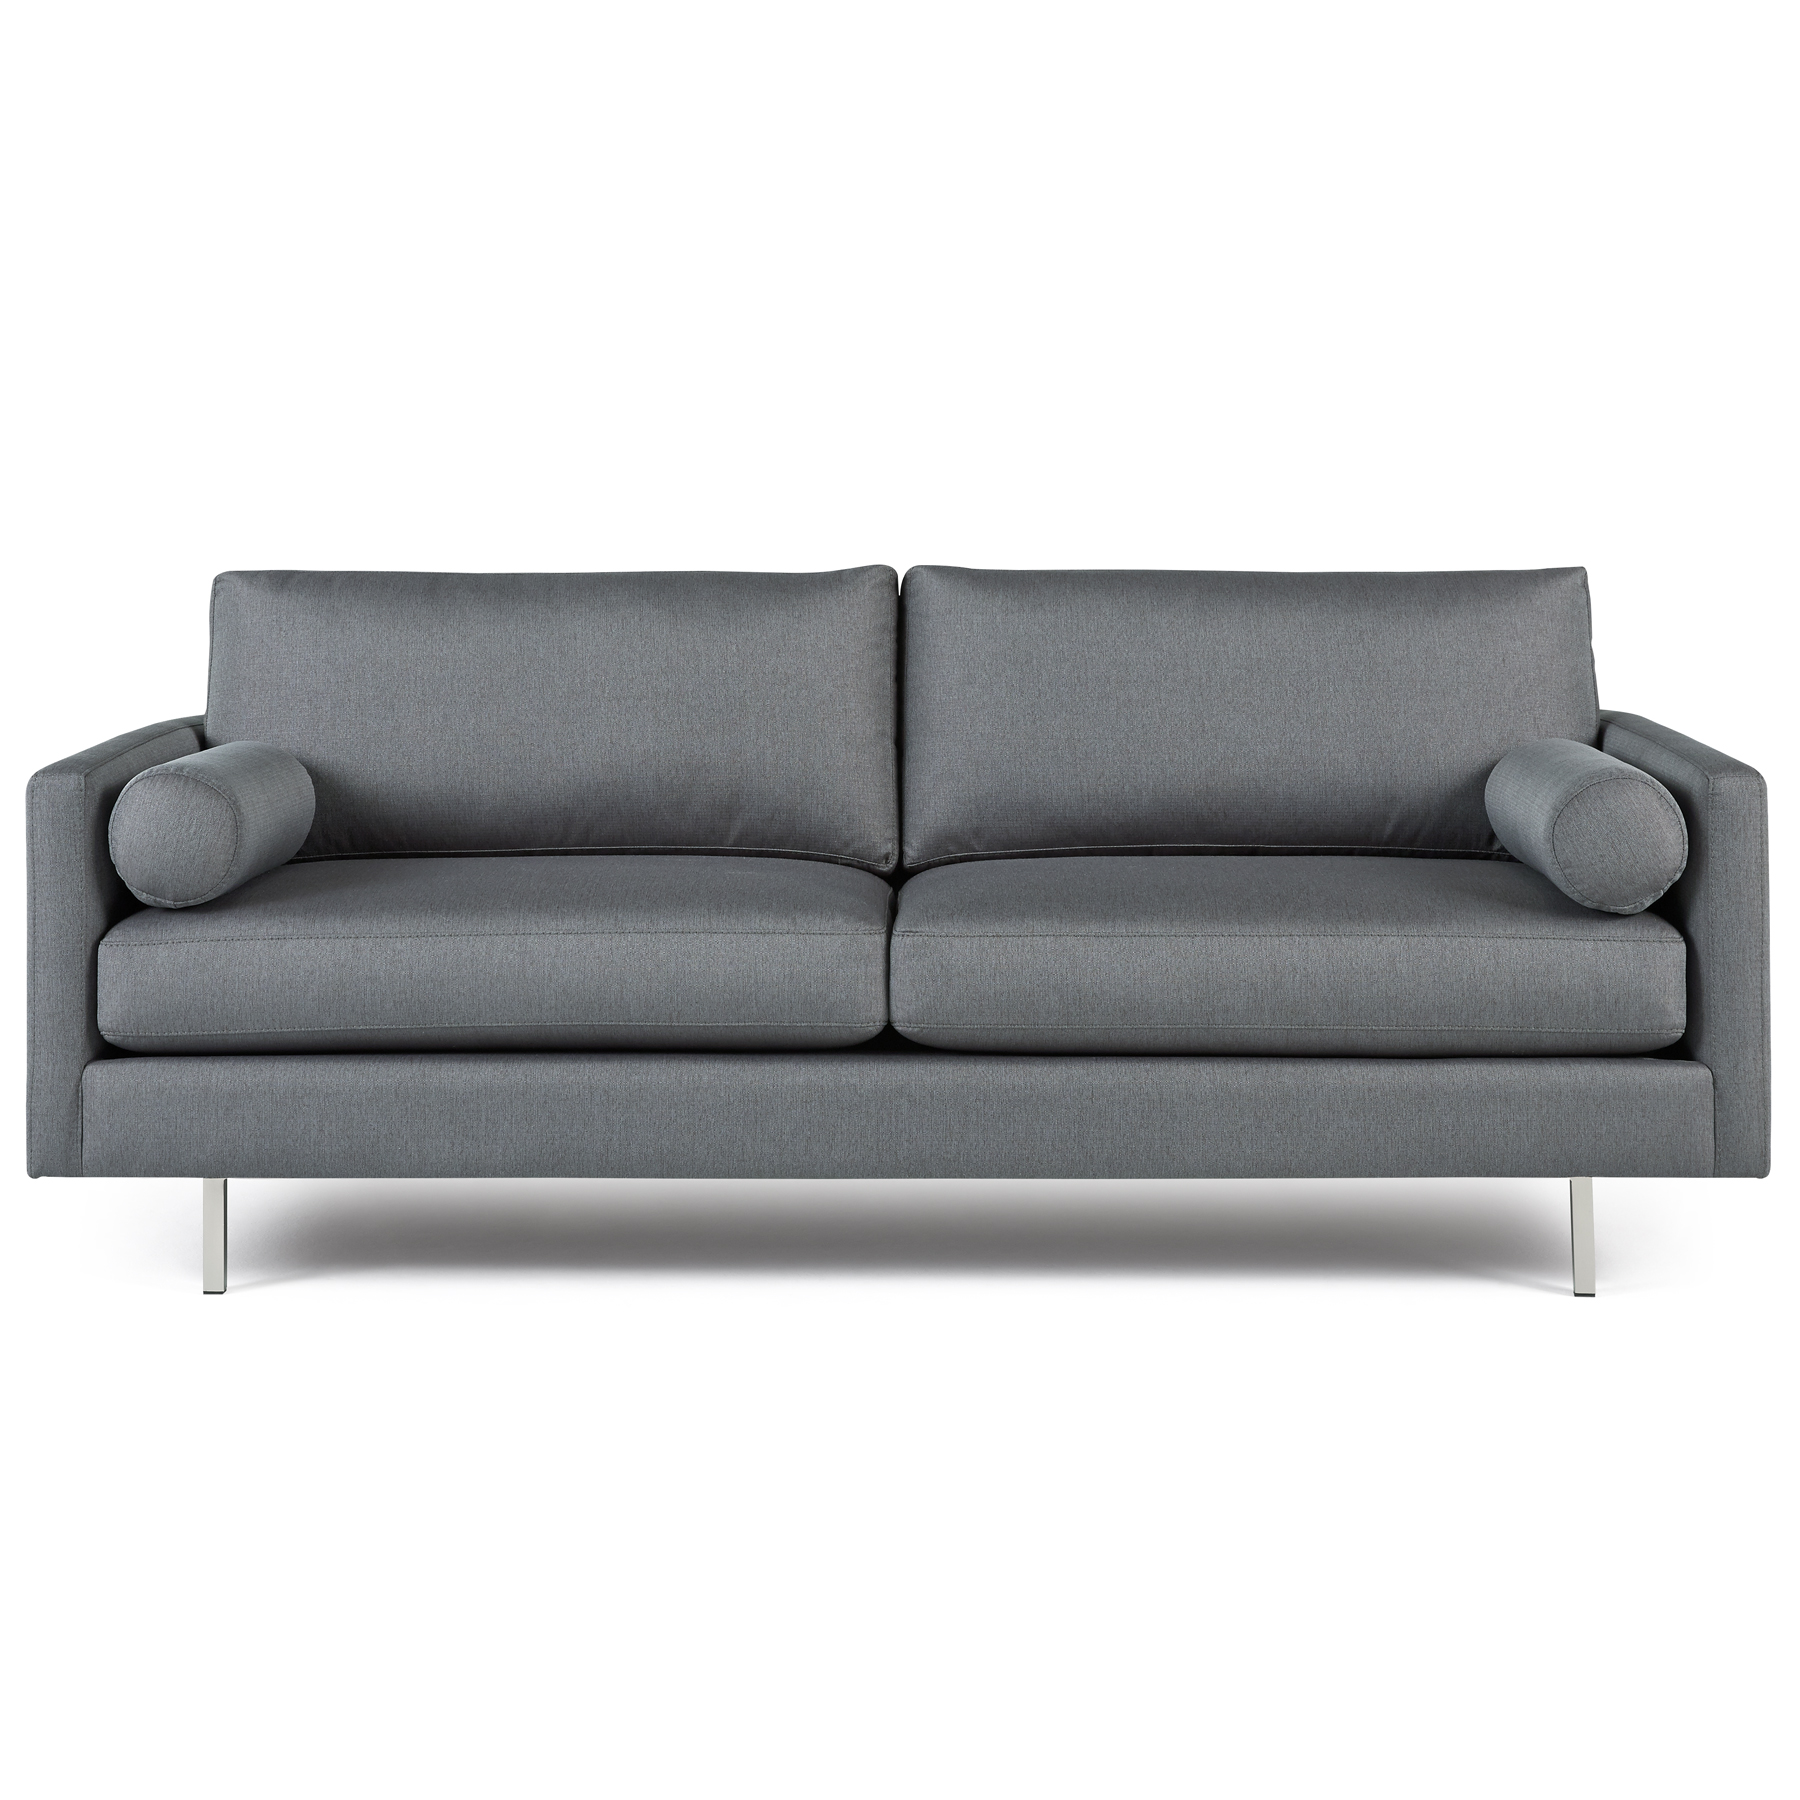 E 79 Modern Sofa With Pillows 150